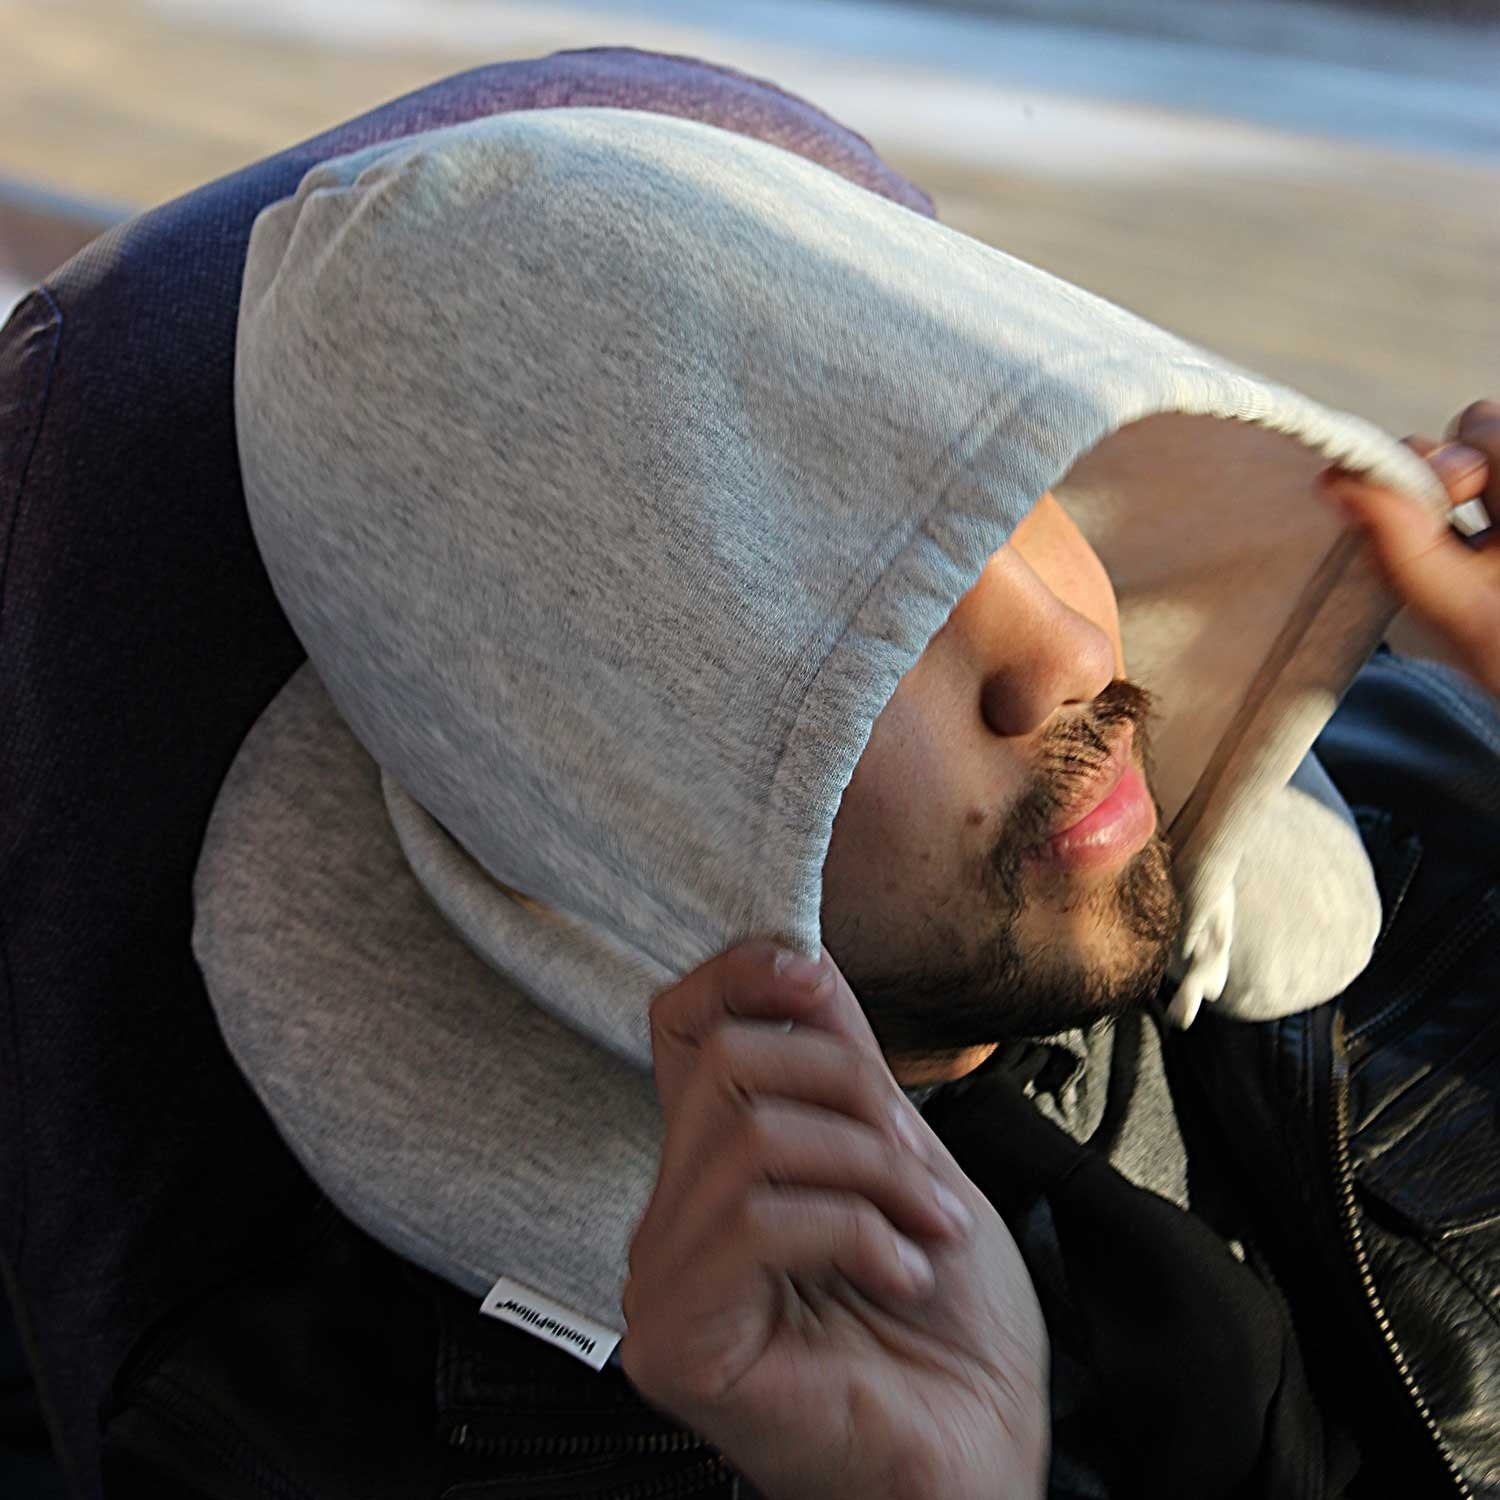 A model using the pillow in grey with the hood up